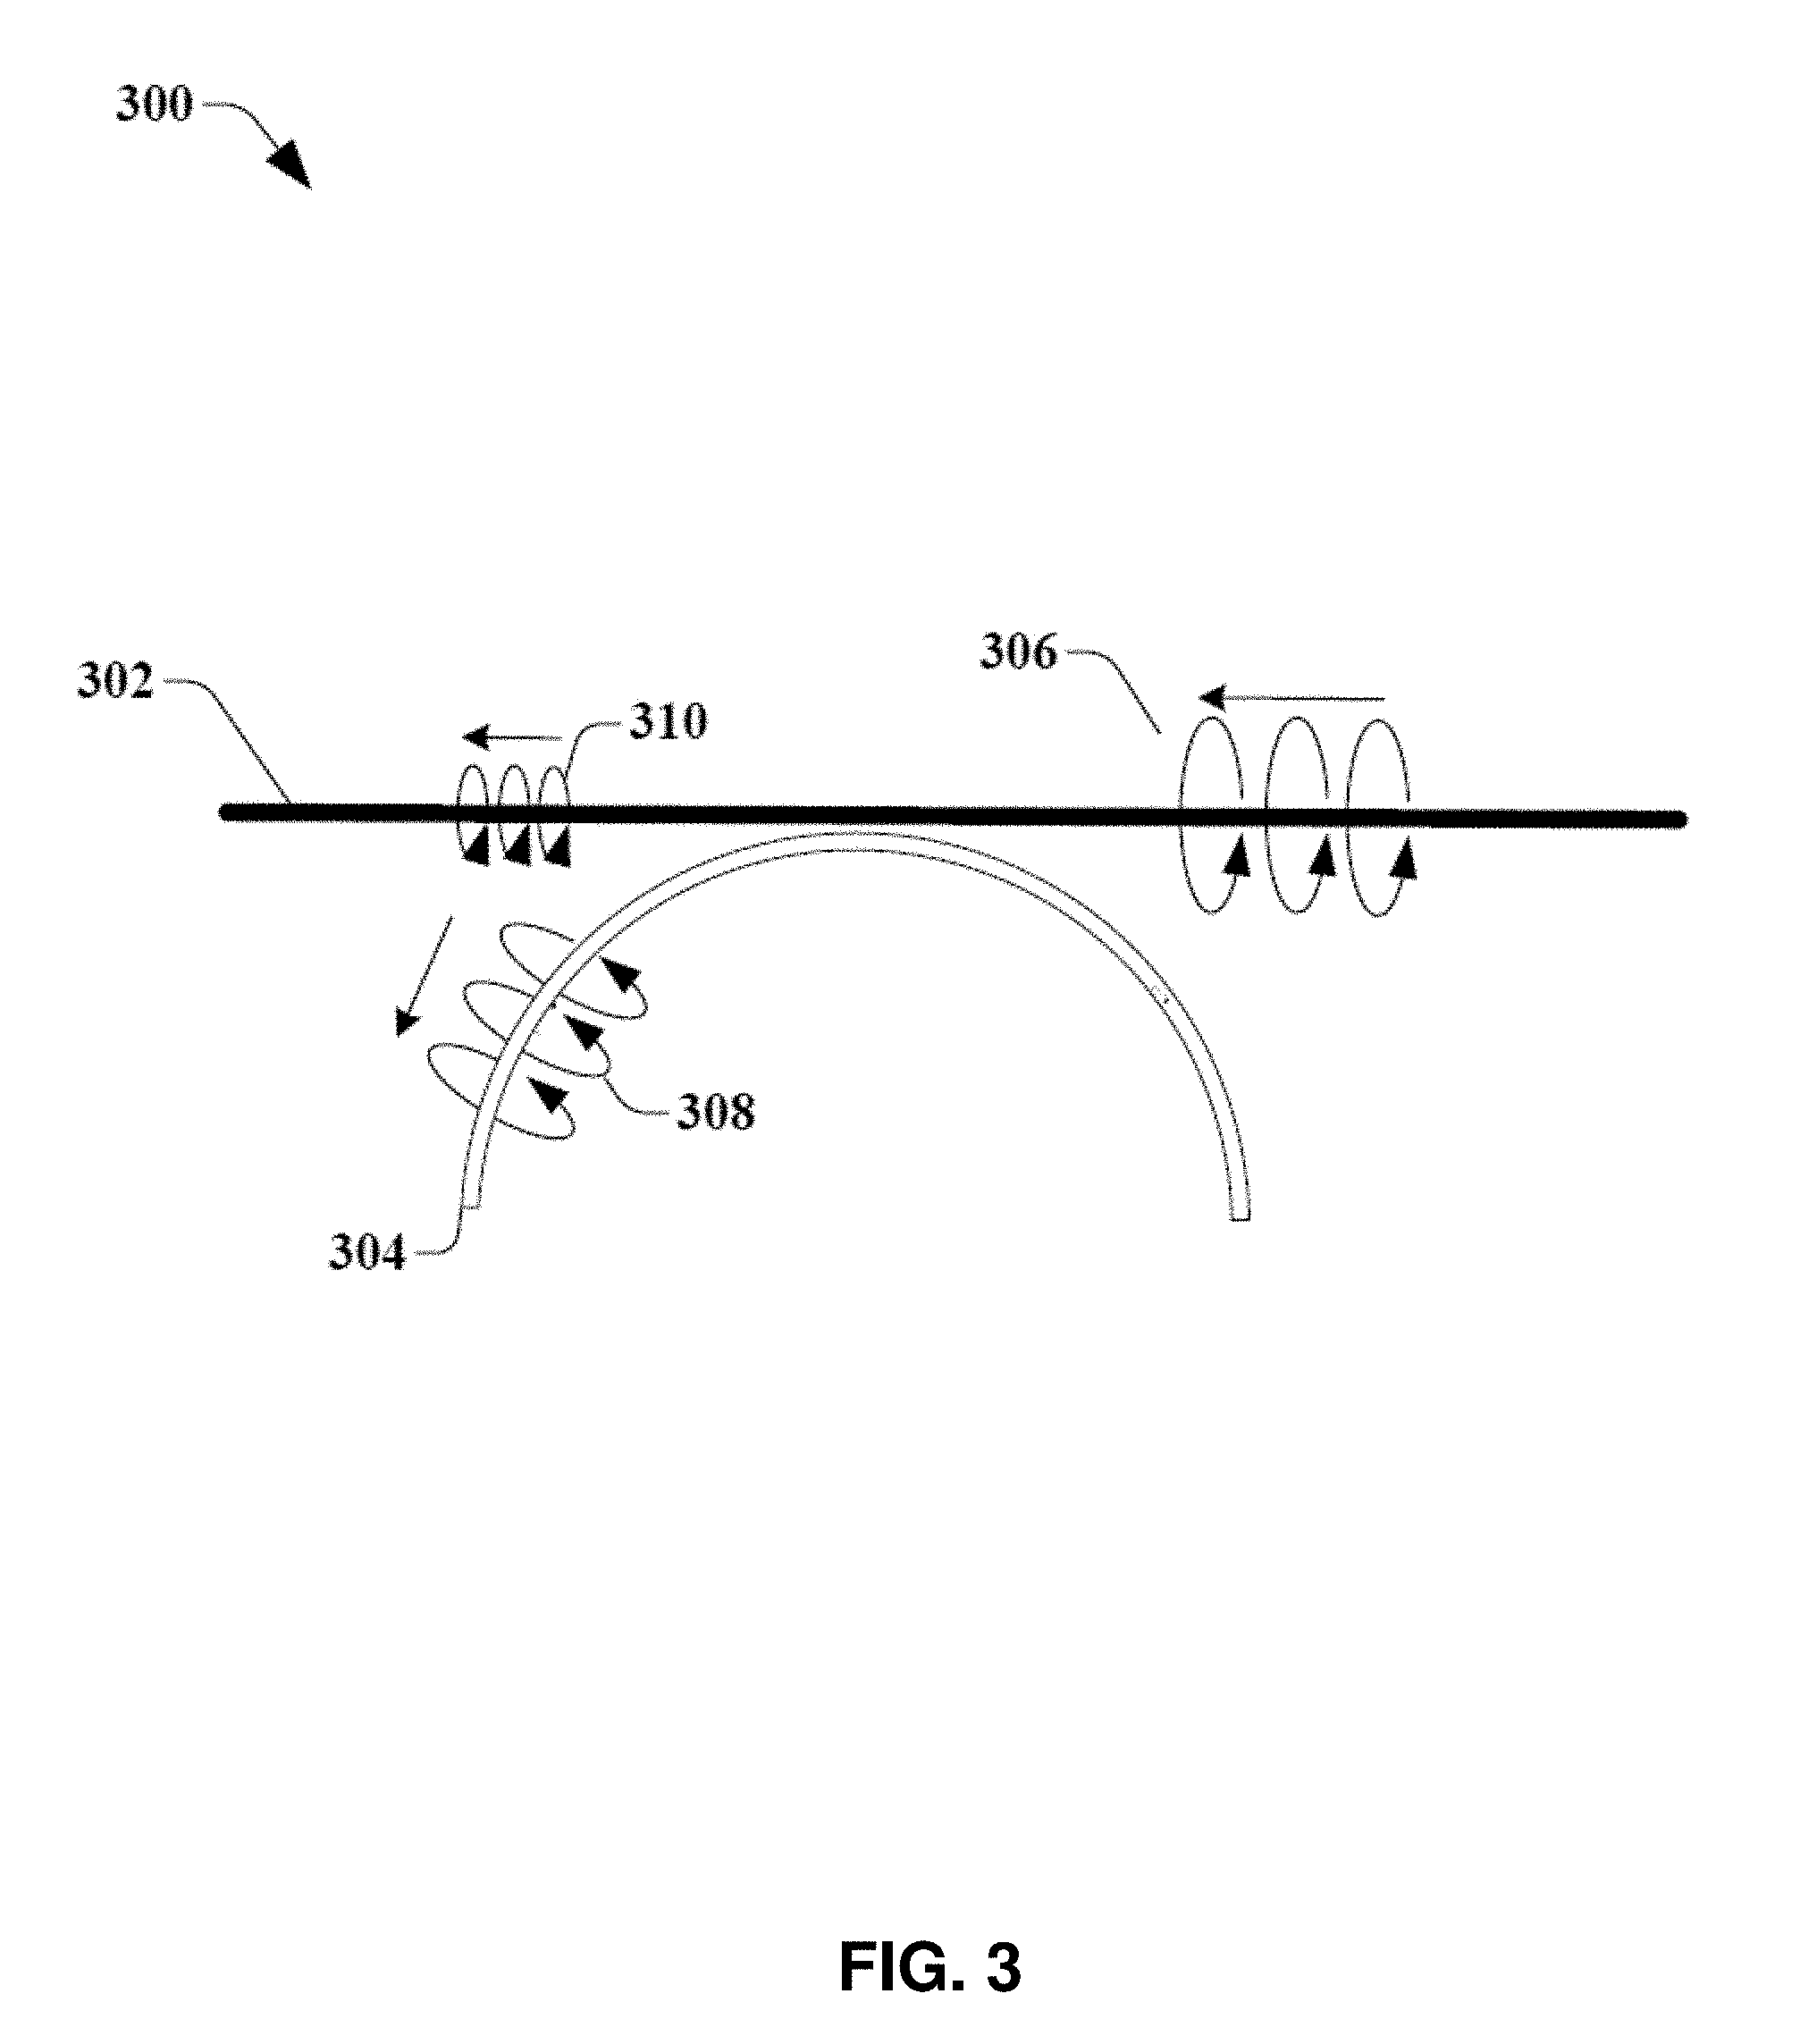 us9780834b2 method and apparatus for transmitting electromagnetic Open Corner Grounded Delta Transformer us9780834b2 method and apparatus for transmitting electromagnetic waves patents